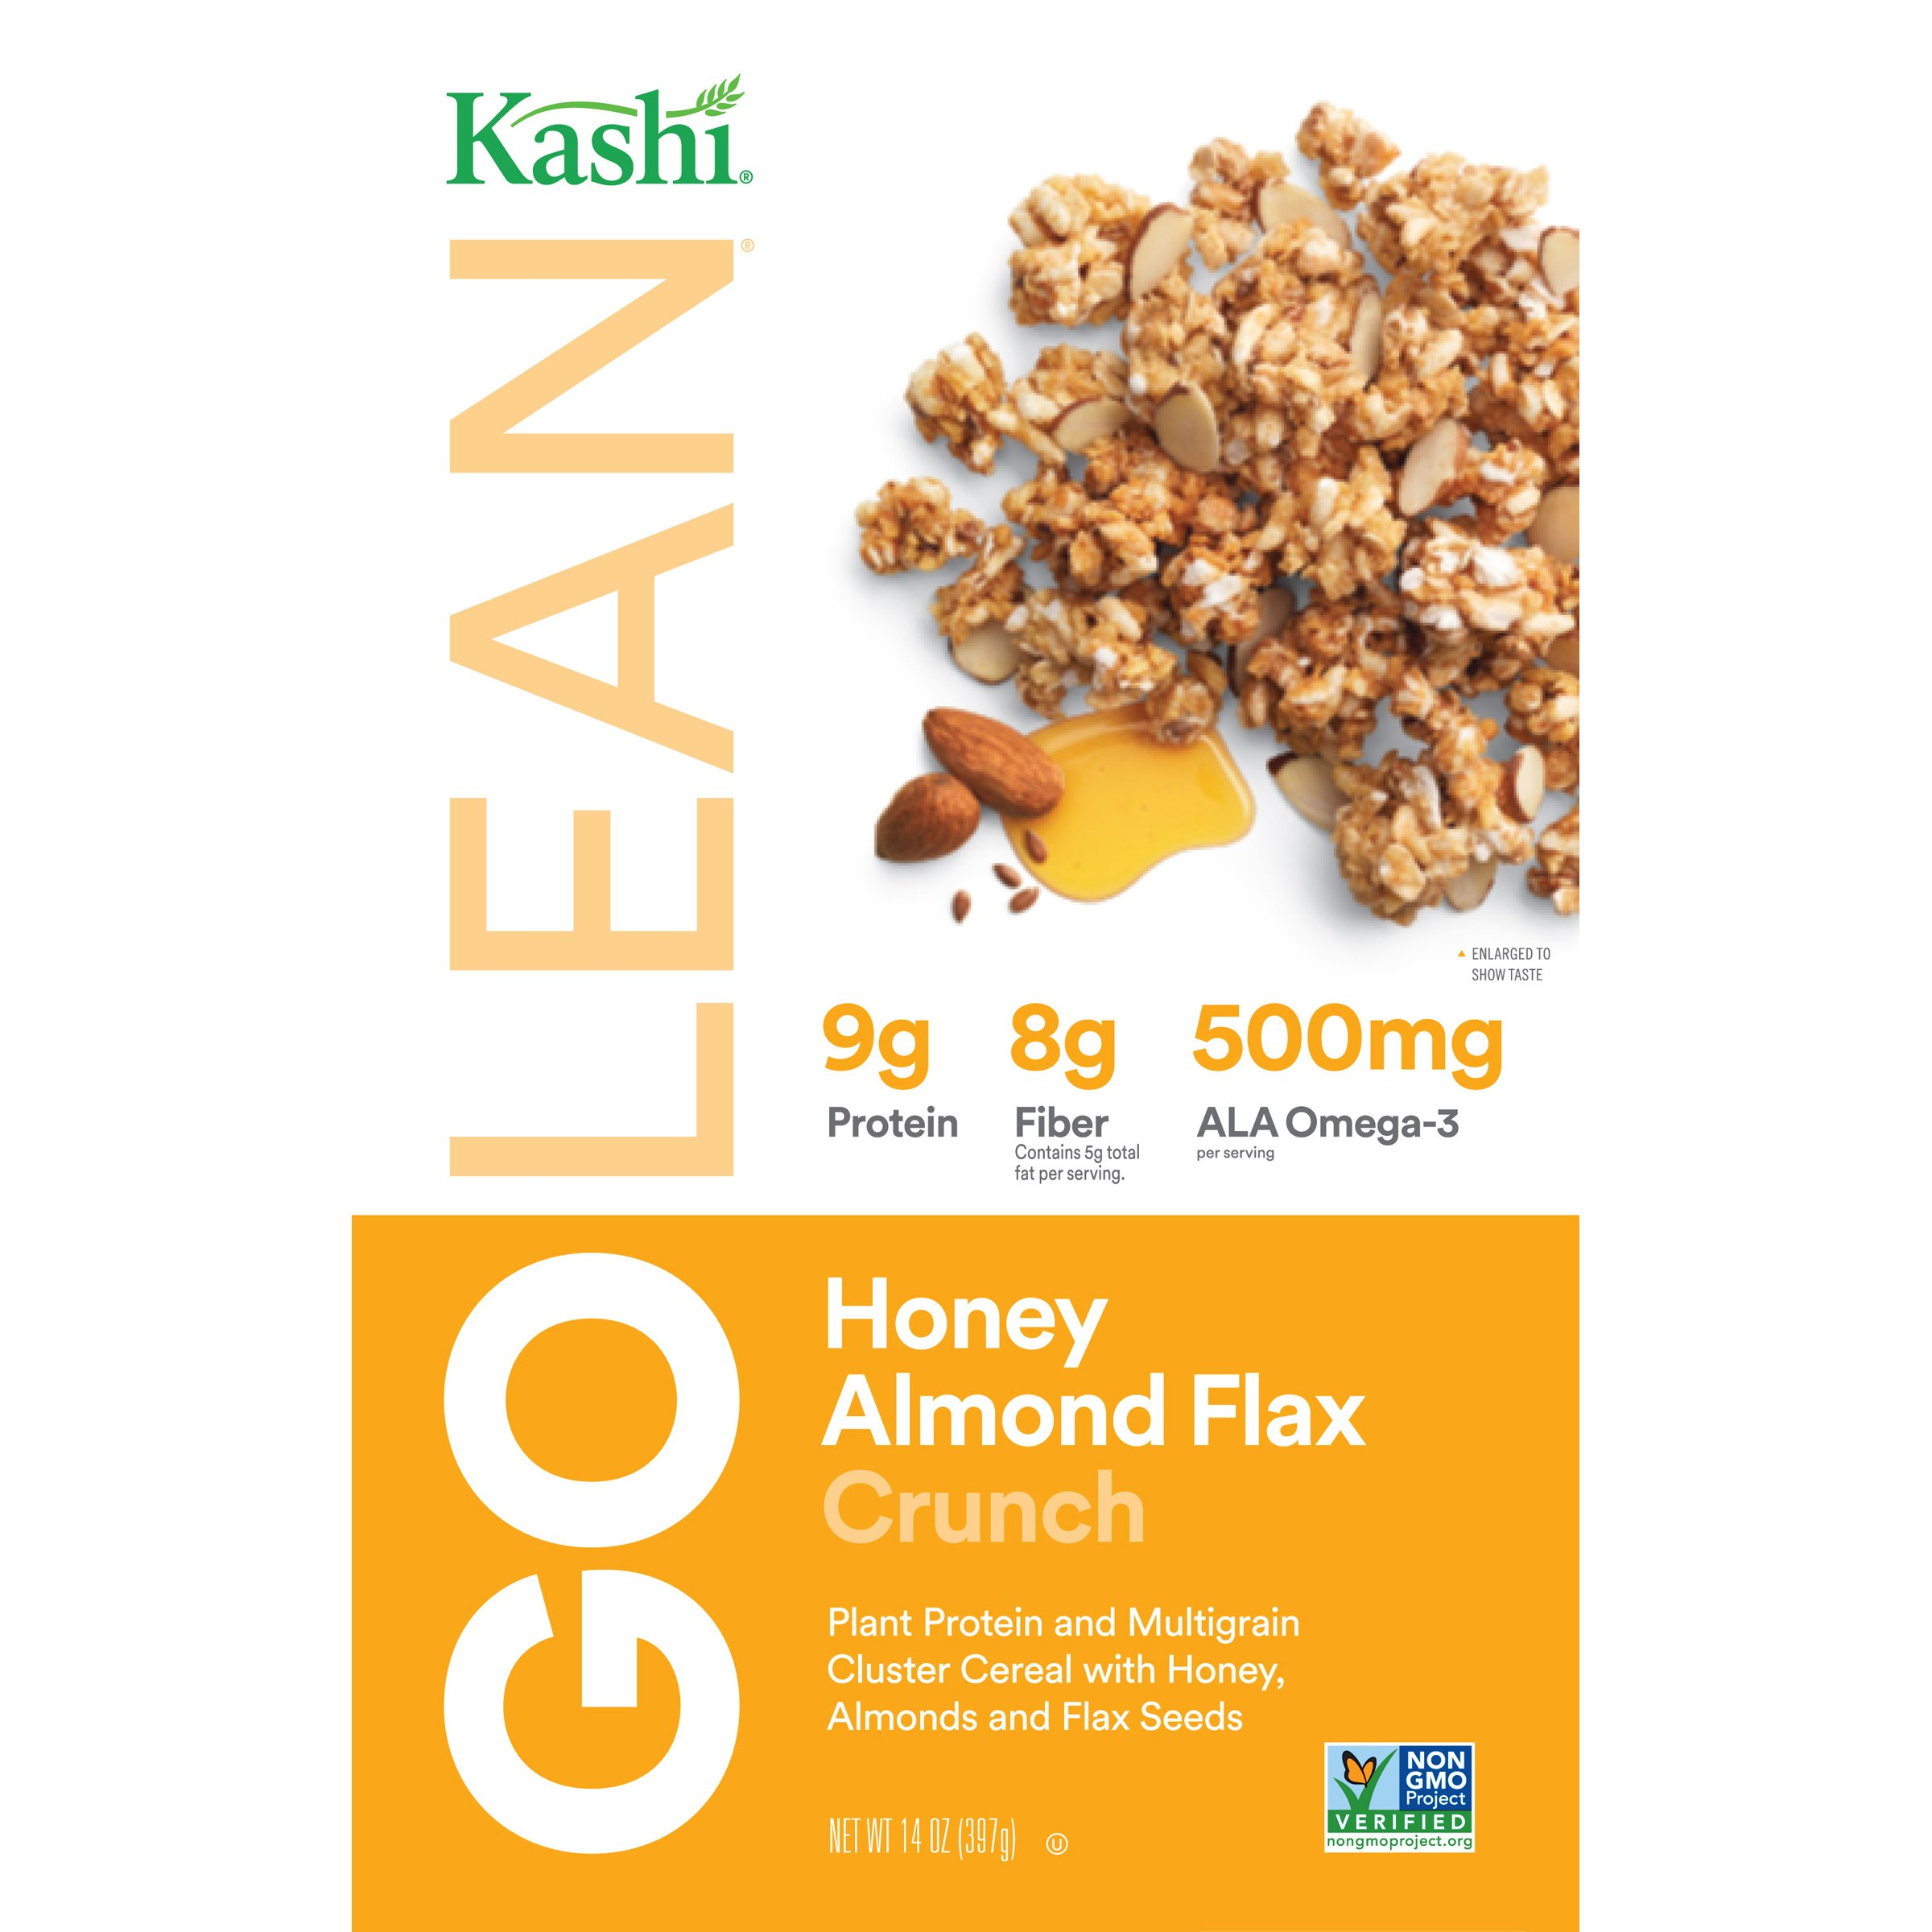 Kashi GOLEAN, Breakfast Cereal, Honey Almond Flax Crunch, Non-GMO Project Verified, 14 oz(Pack of 4) by Kashi